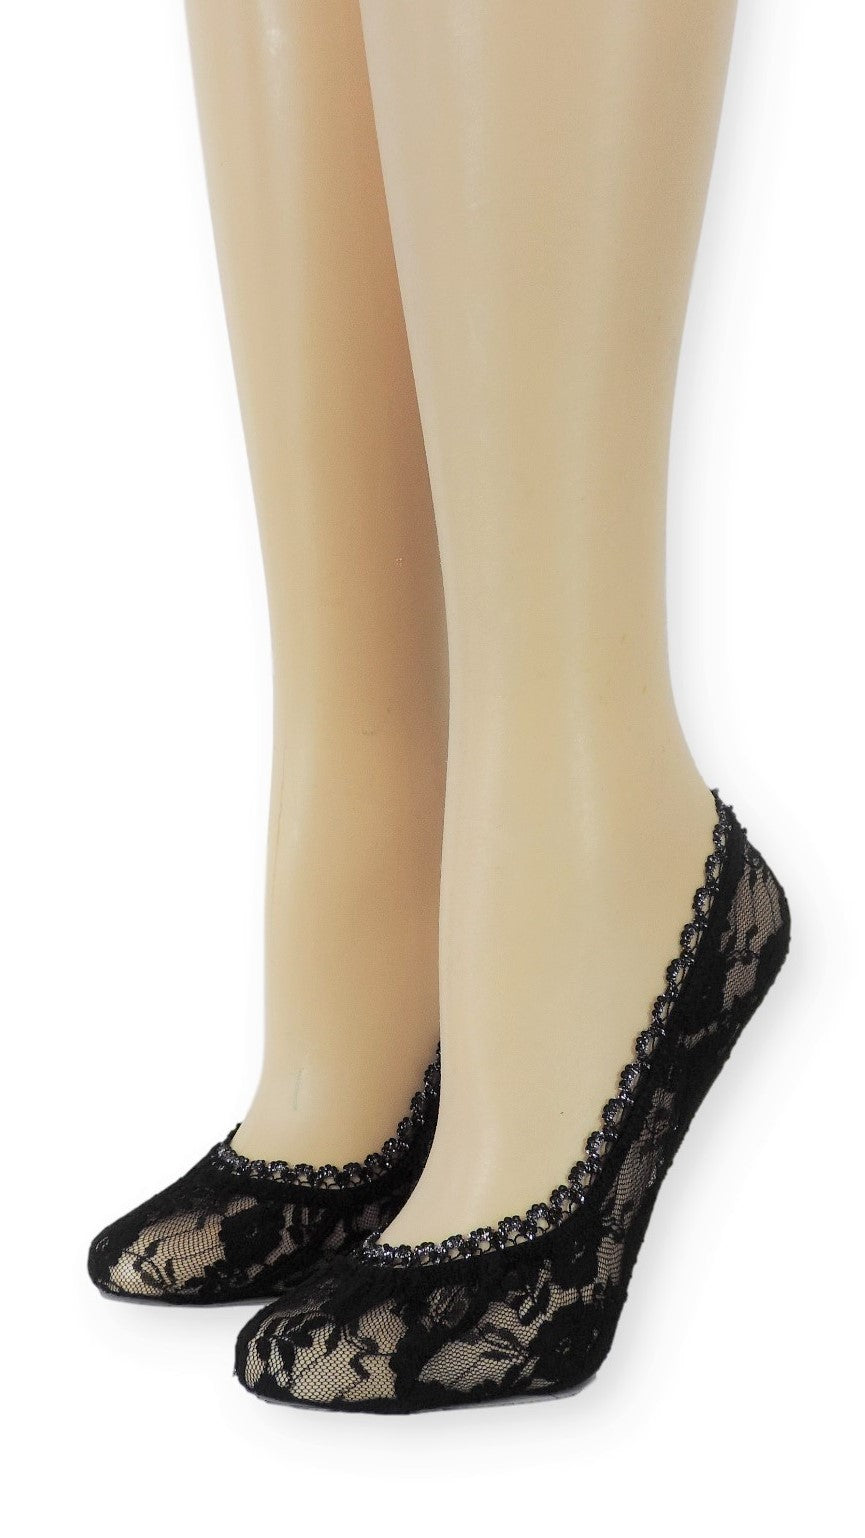 Black Ankle Mesh Socks with Glitter Lace - Global Trendz Fashion®